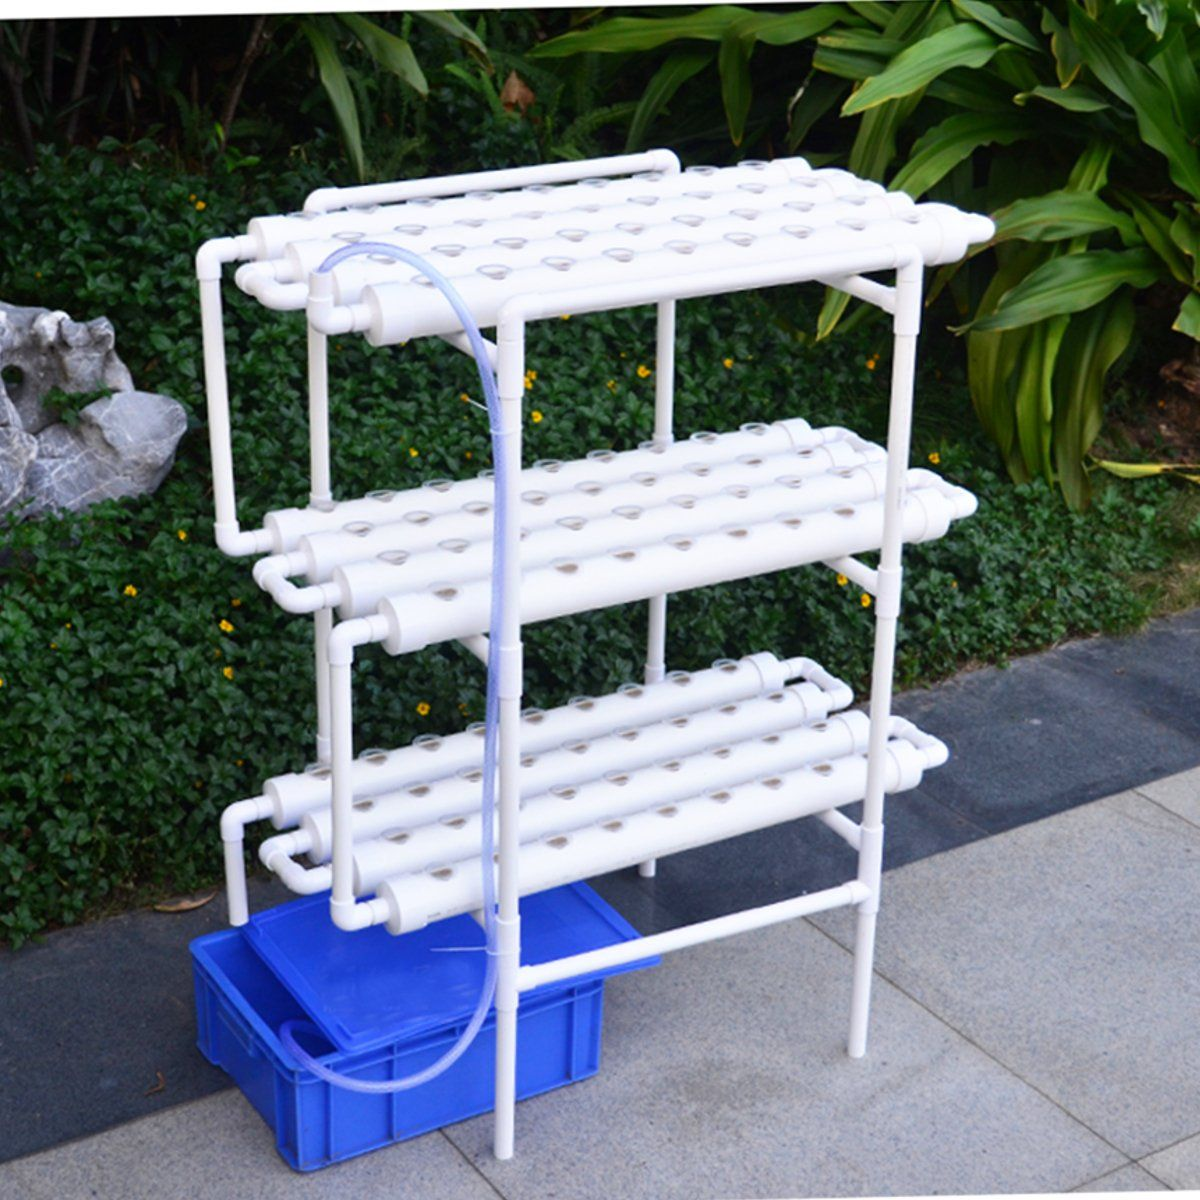 Hydroponic Grow Kit 108 Sites 12 Pipes 3 Layers Garden Plant Vegetable Planting Water Culture System Hydroponic Grow Kits Garden Plants Vegetable Hydroponics System